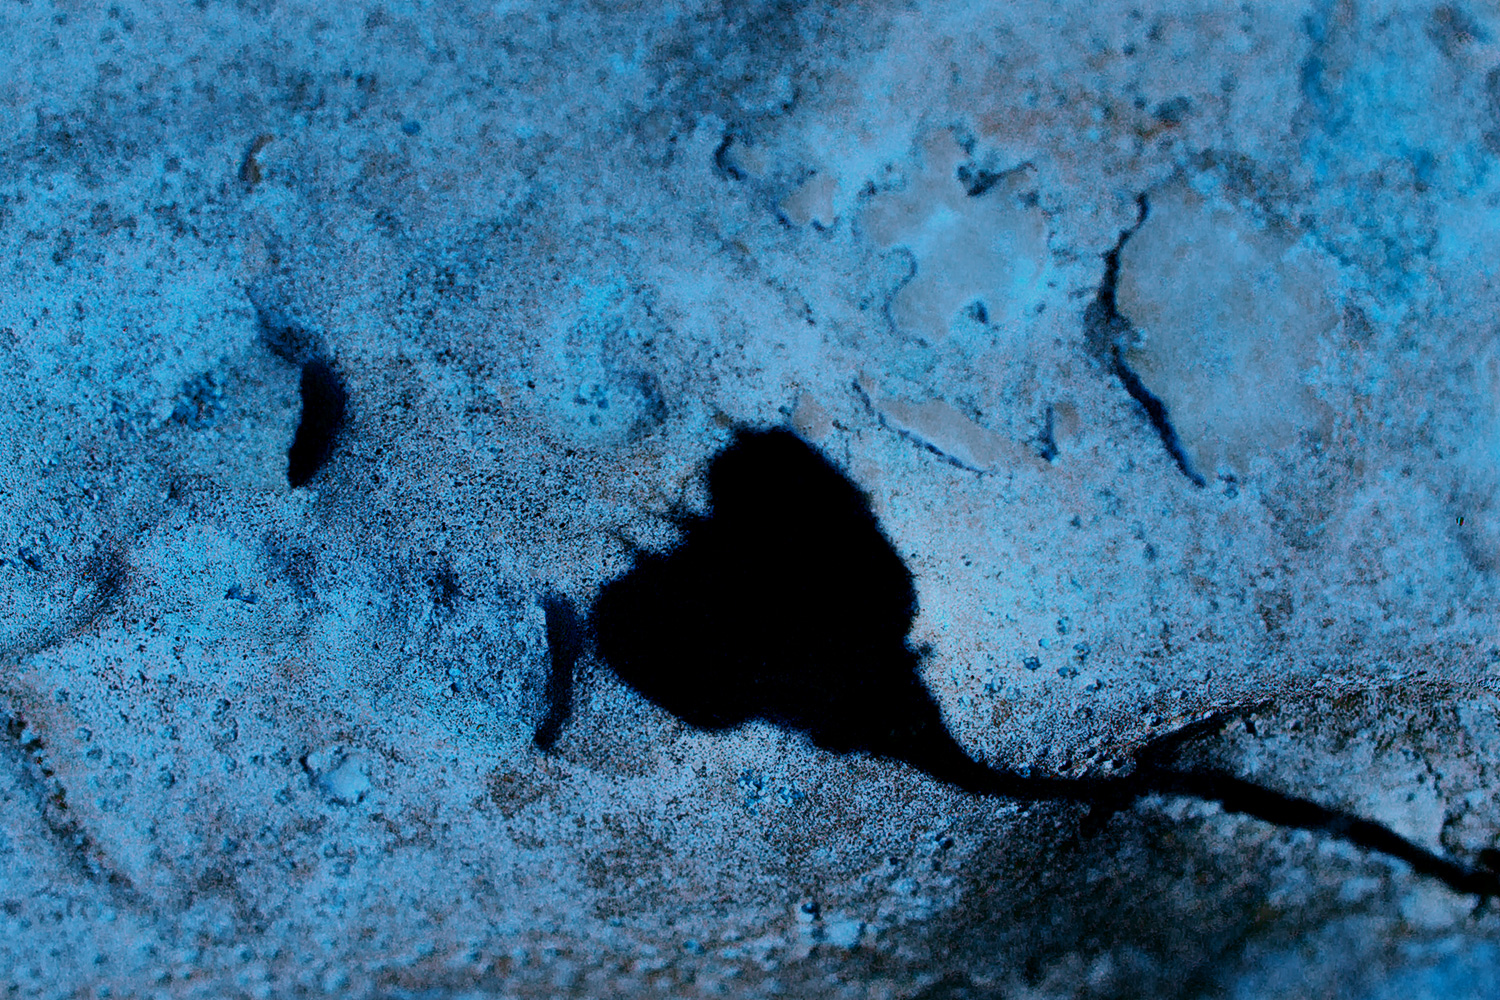 A Summer Silhouette on a Rock in Blue